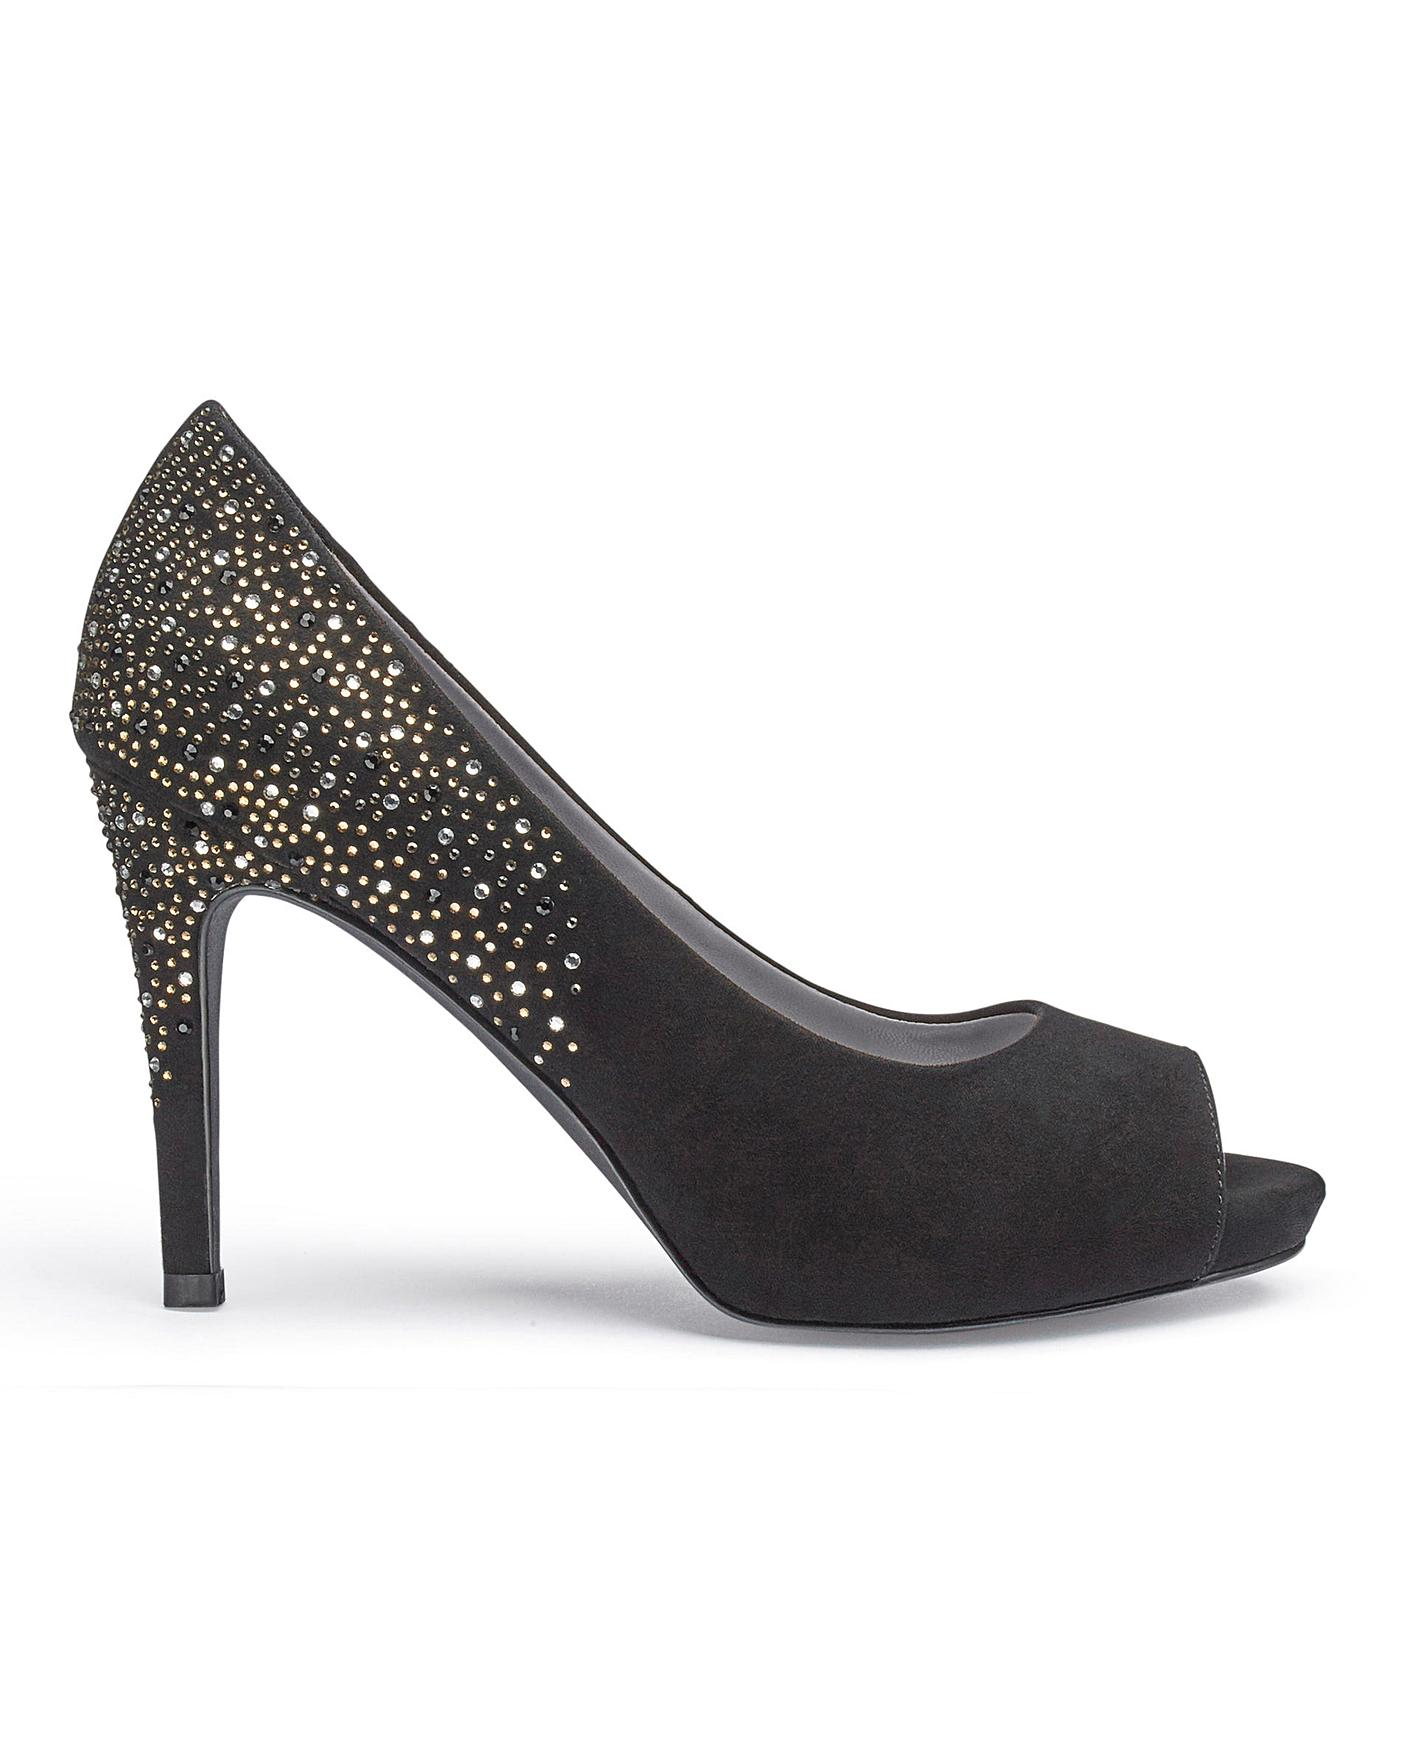 ee0649933071 Joanna Hope Peep Toe Shoes EEE Fit